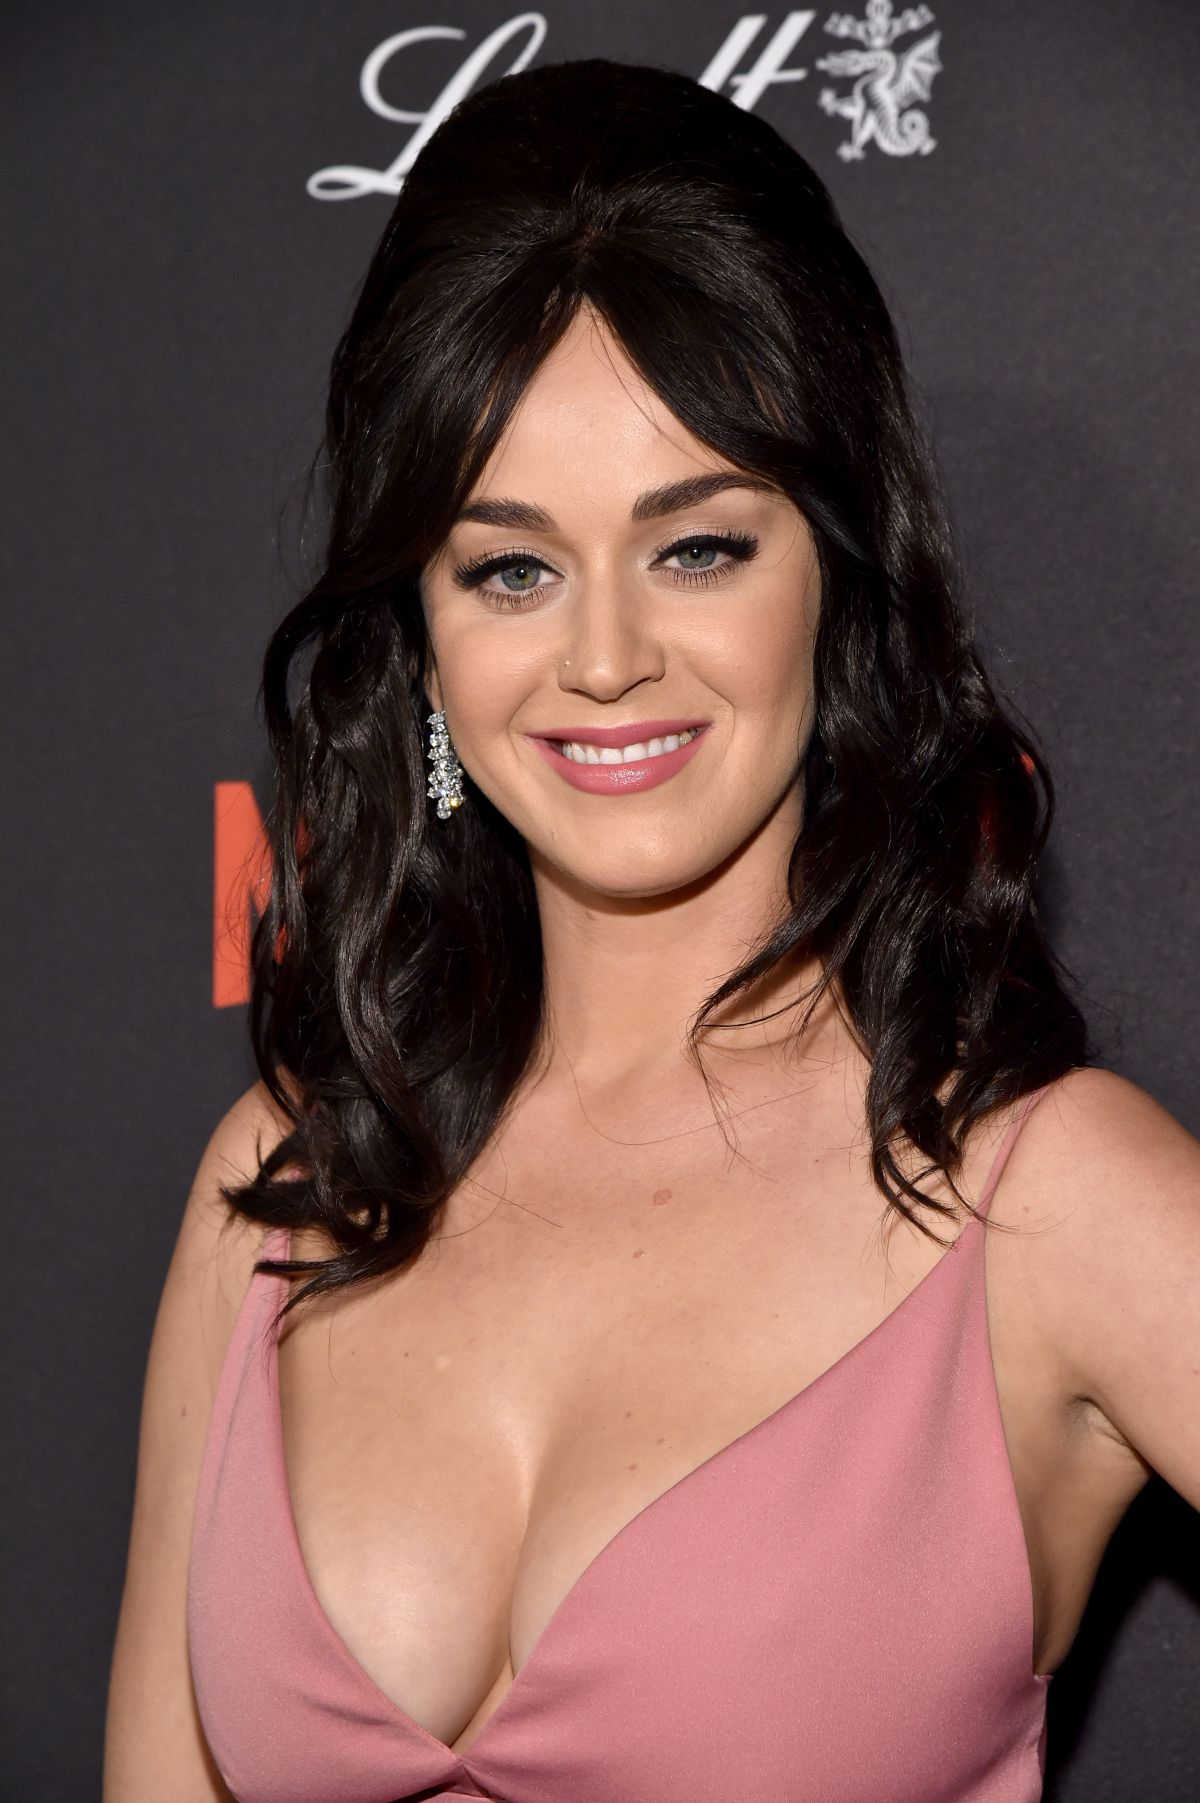 KATY PERRY at The Weinstein Company & Netflix Golden Globe ... Katy Perry